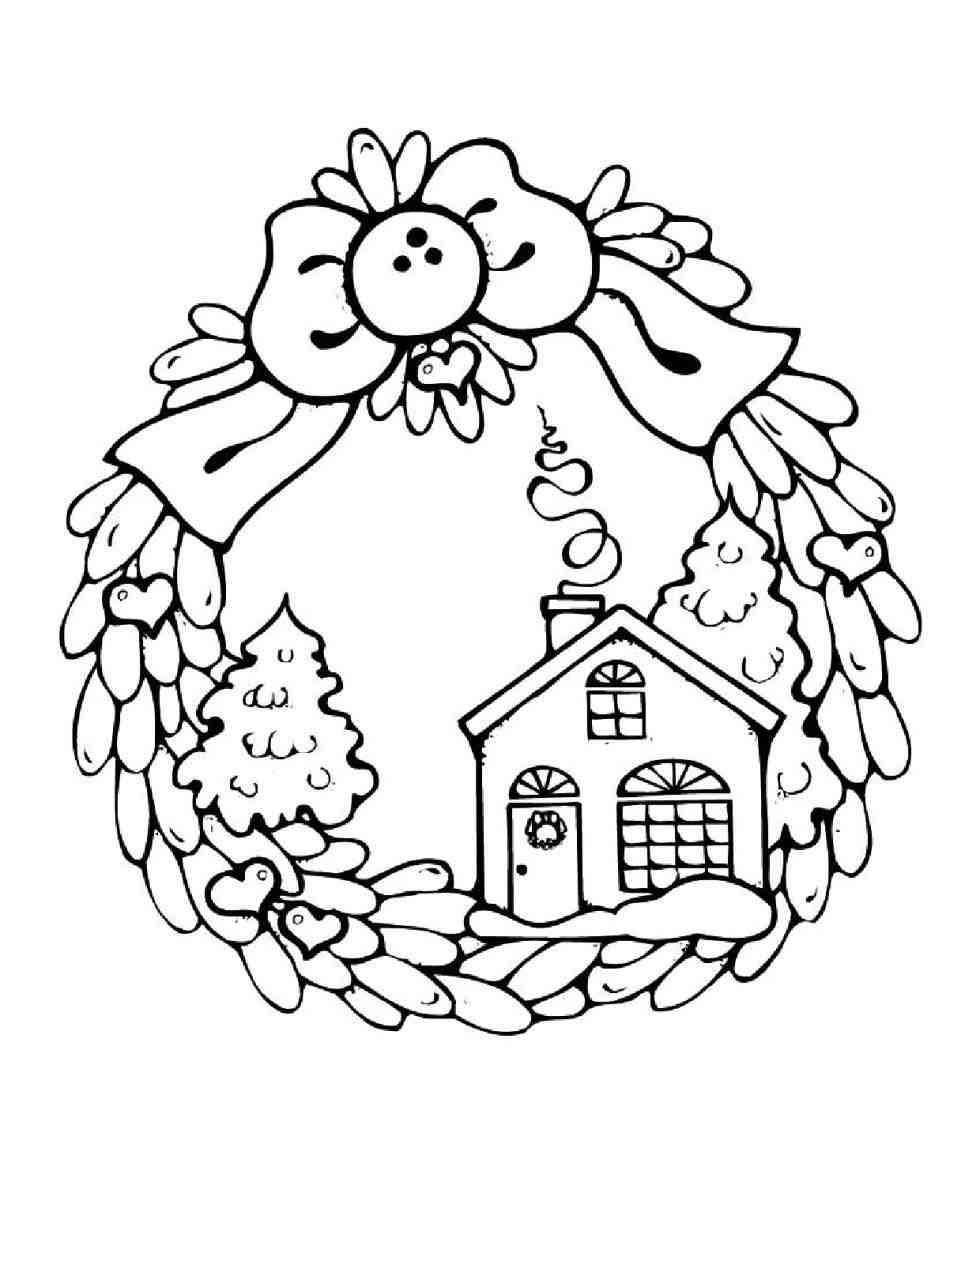 980x1268 Merry Christmas Coloring Page Printable Cheminee.website